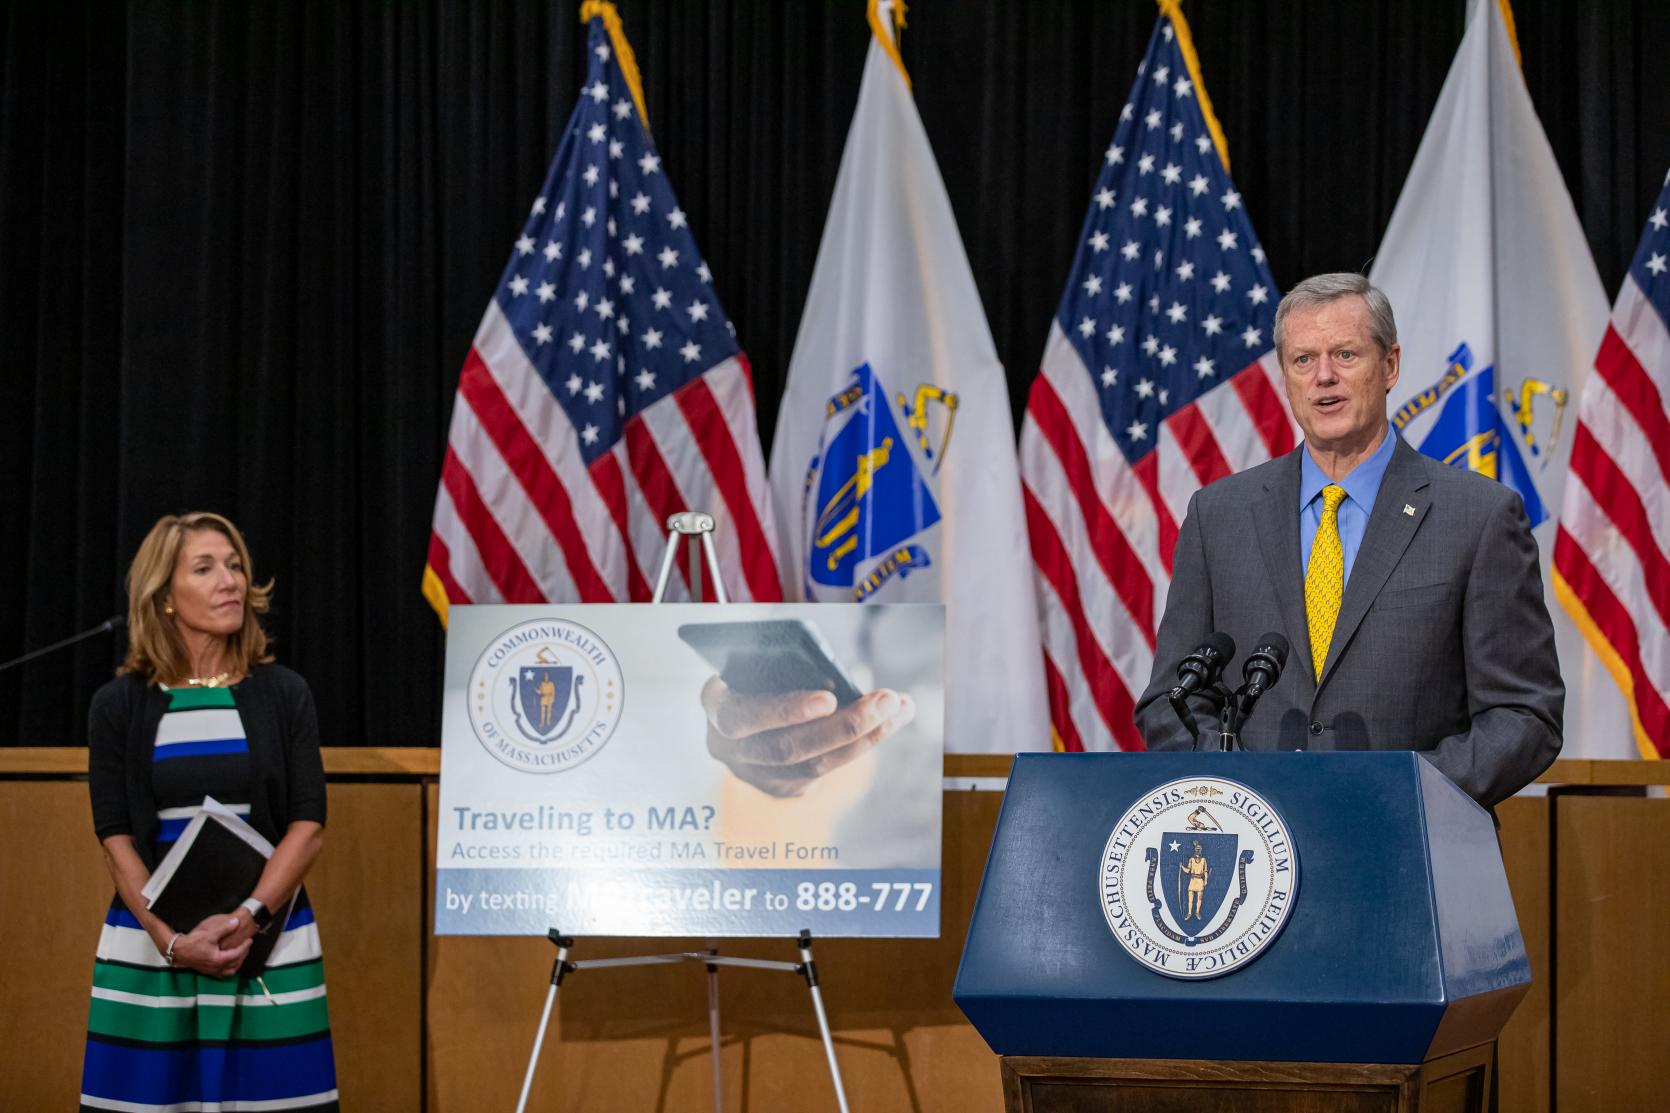 Baker-Polito Administration Issues New Travel Order Effective August 1st